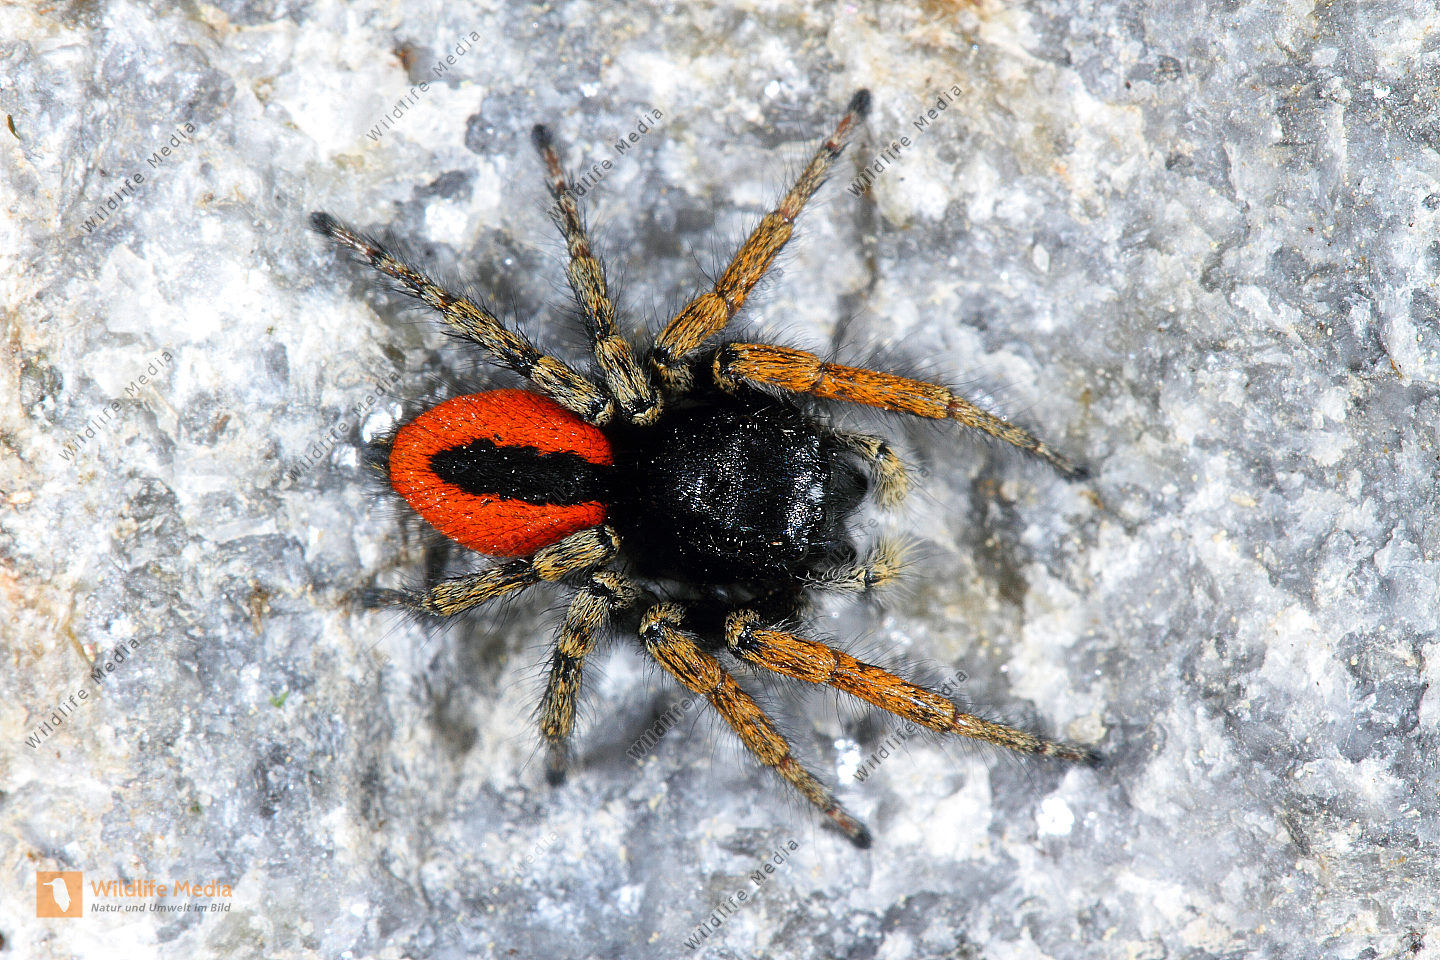 RoteSpringspinne